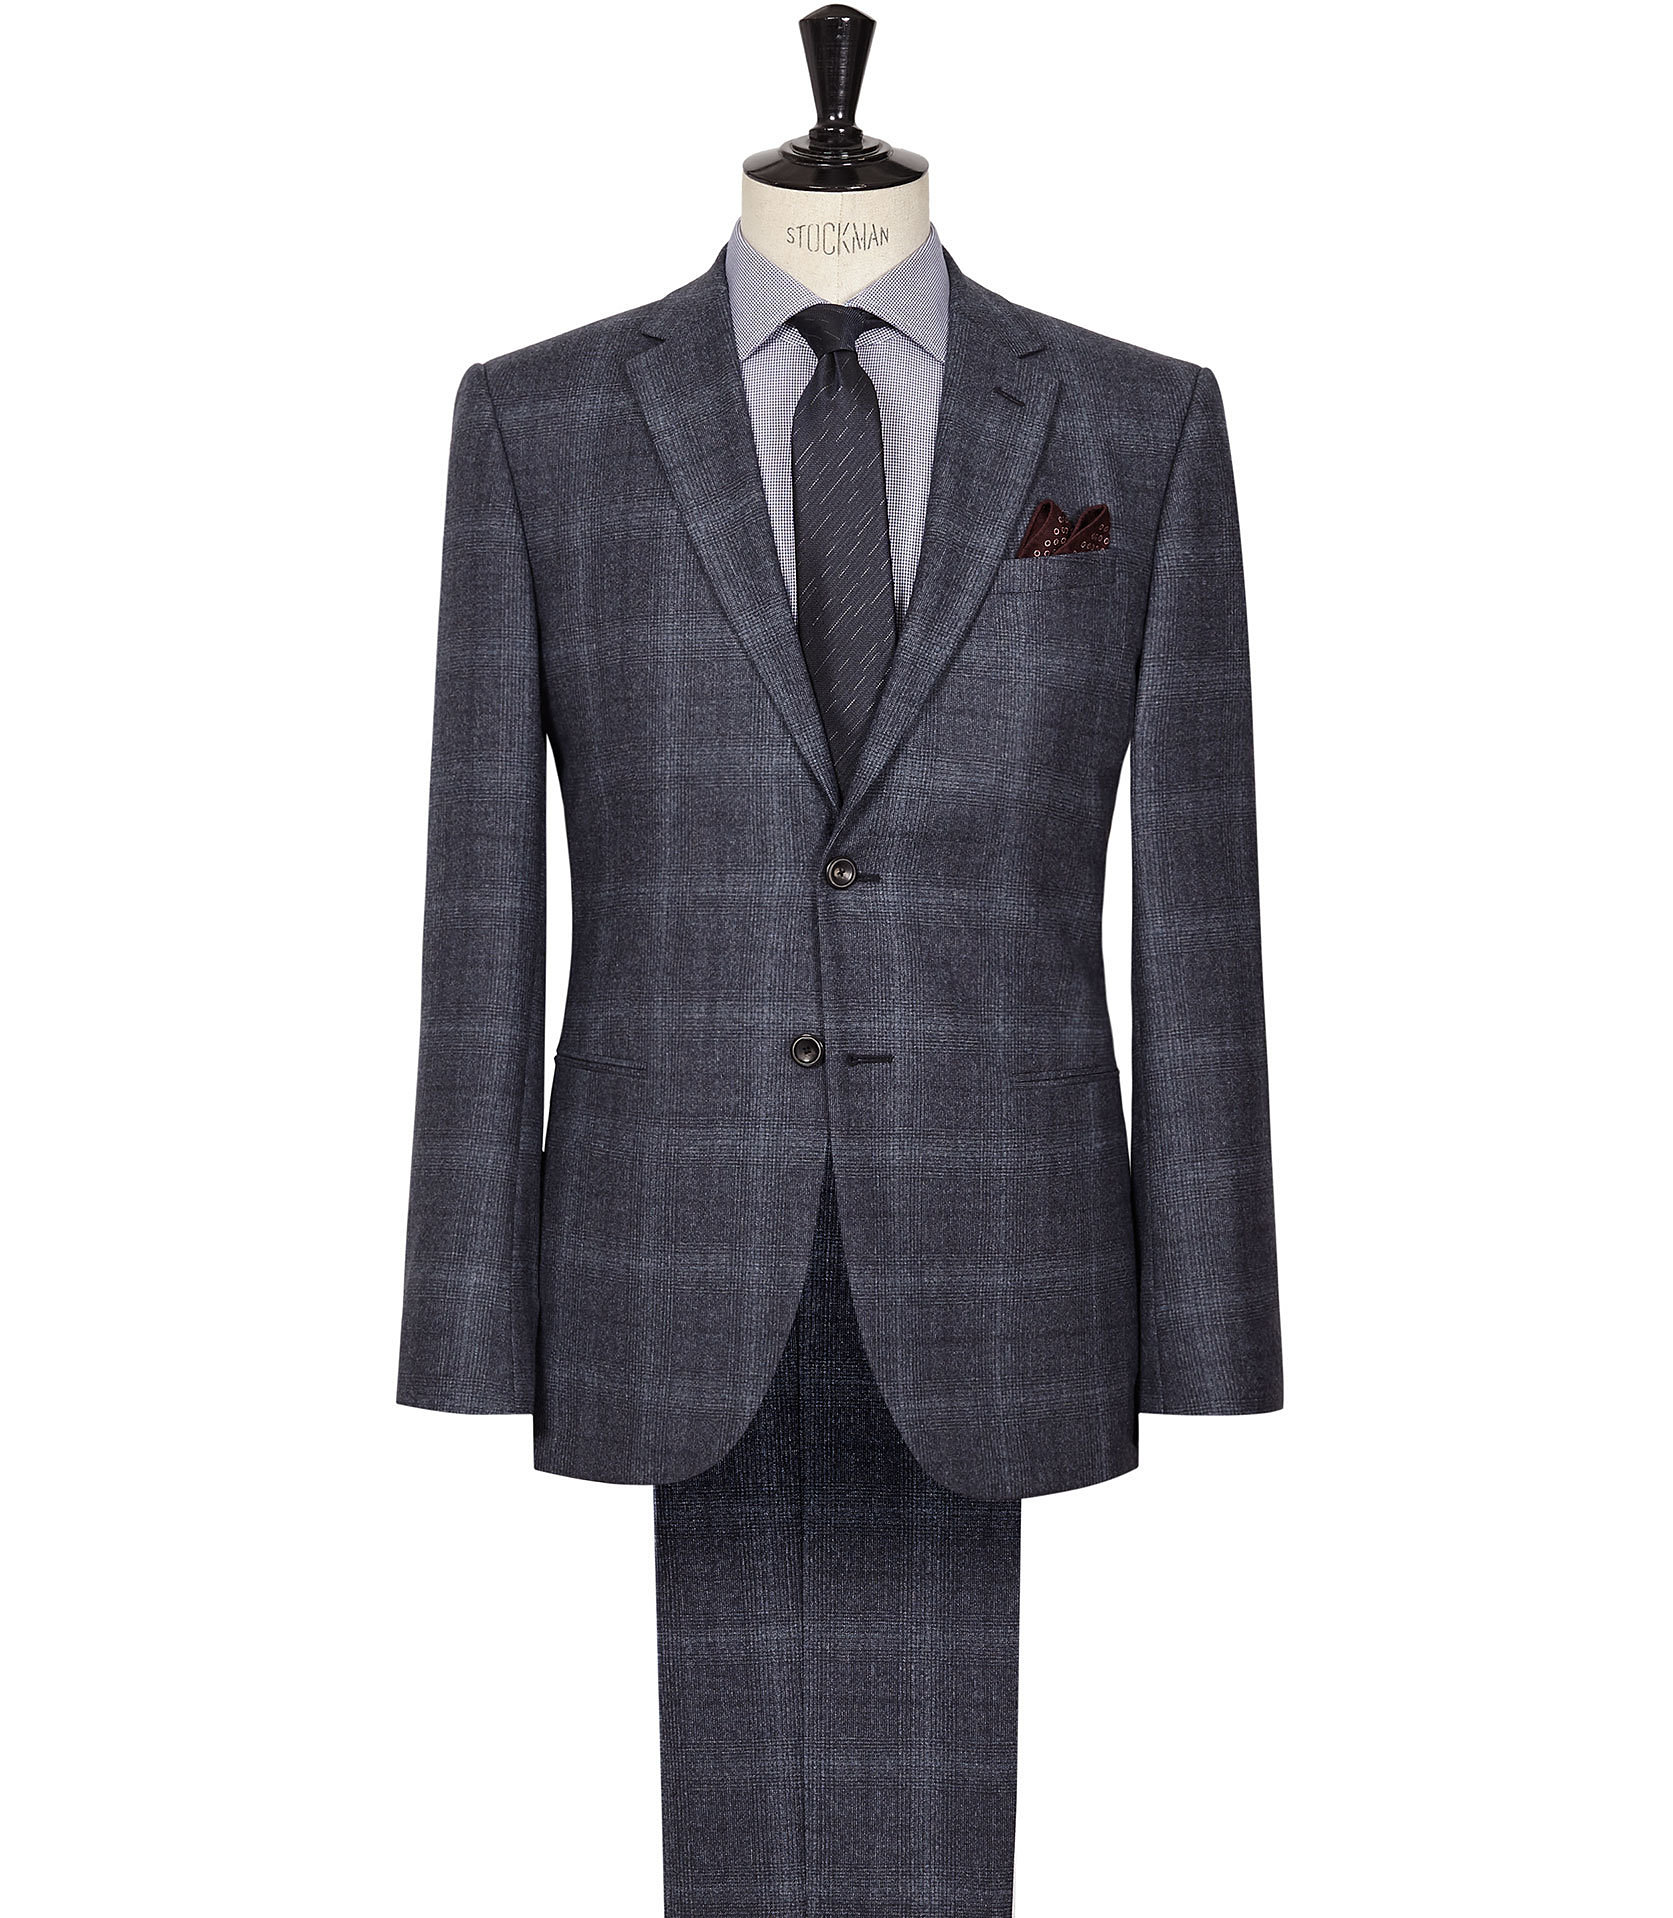 Dark grey suit for the best man of the wedding